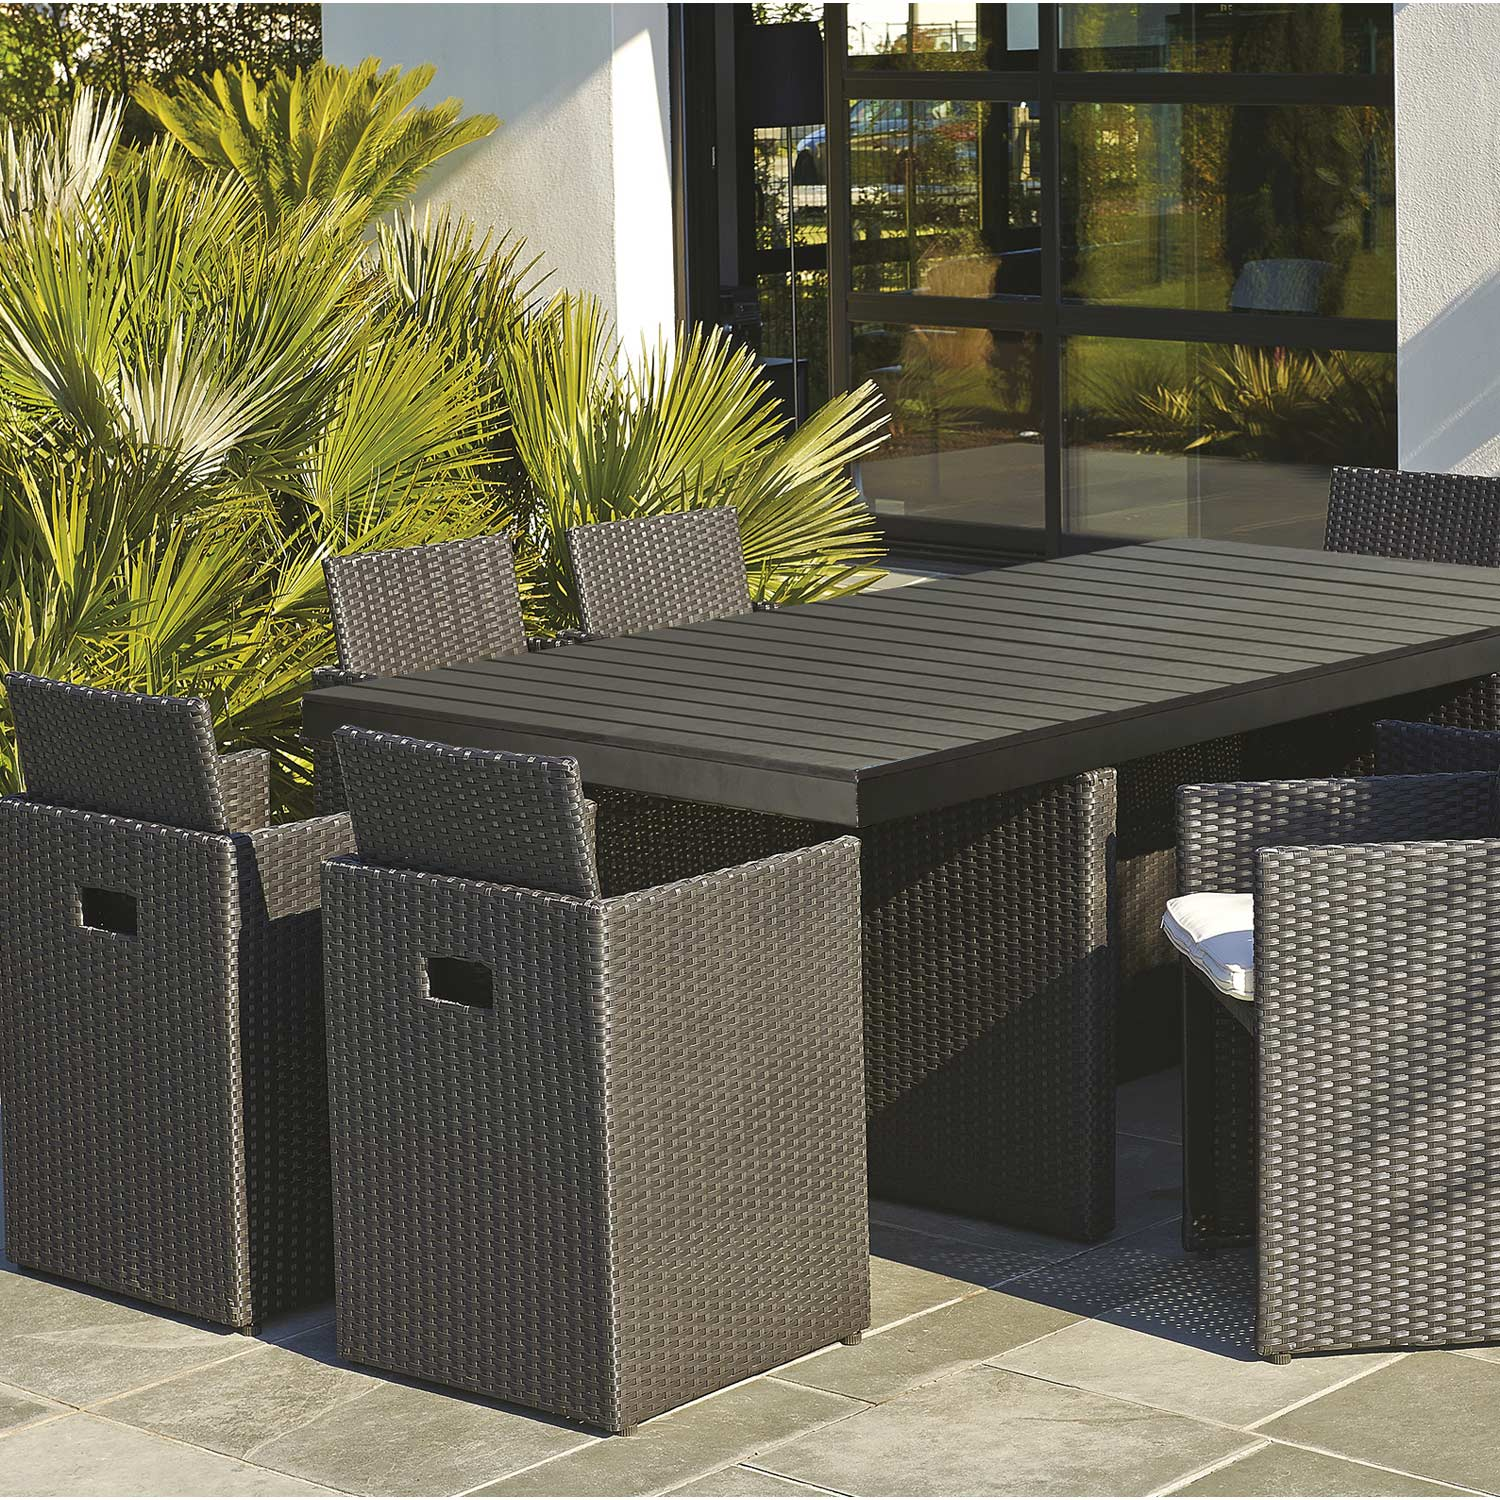 Salon de jardin encastrable r sine tress e noir 1 table for Soldes table de jardin